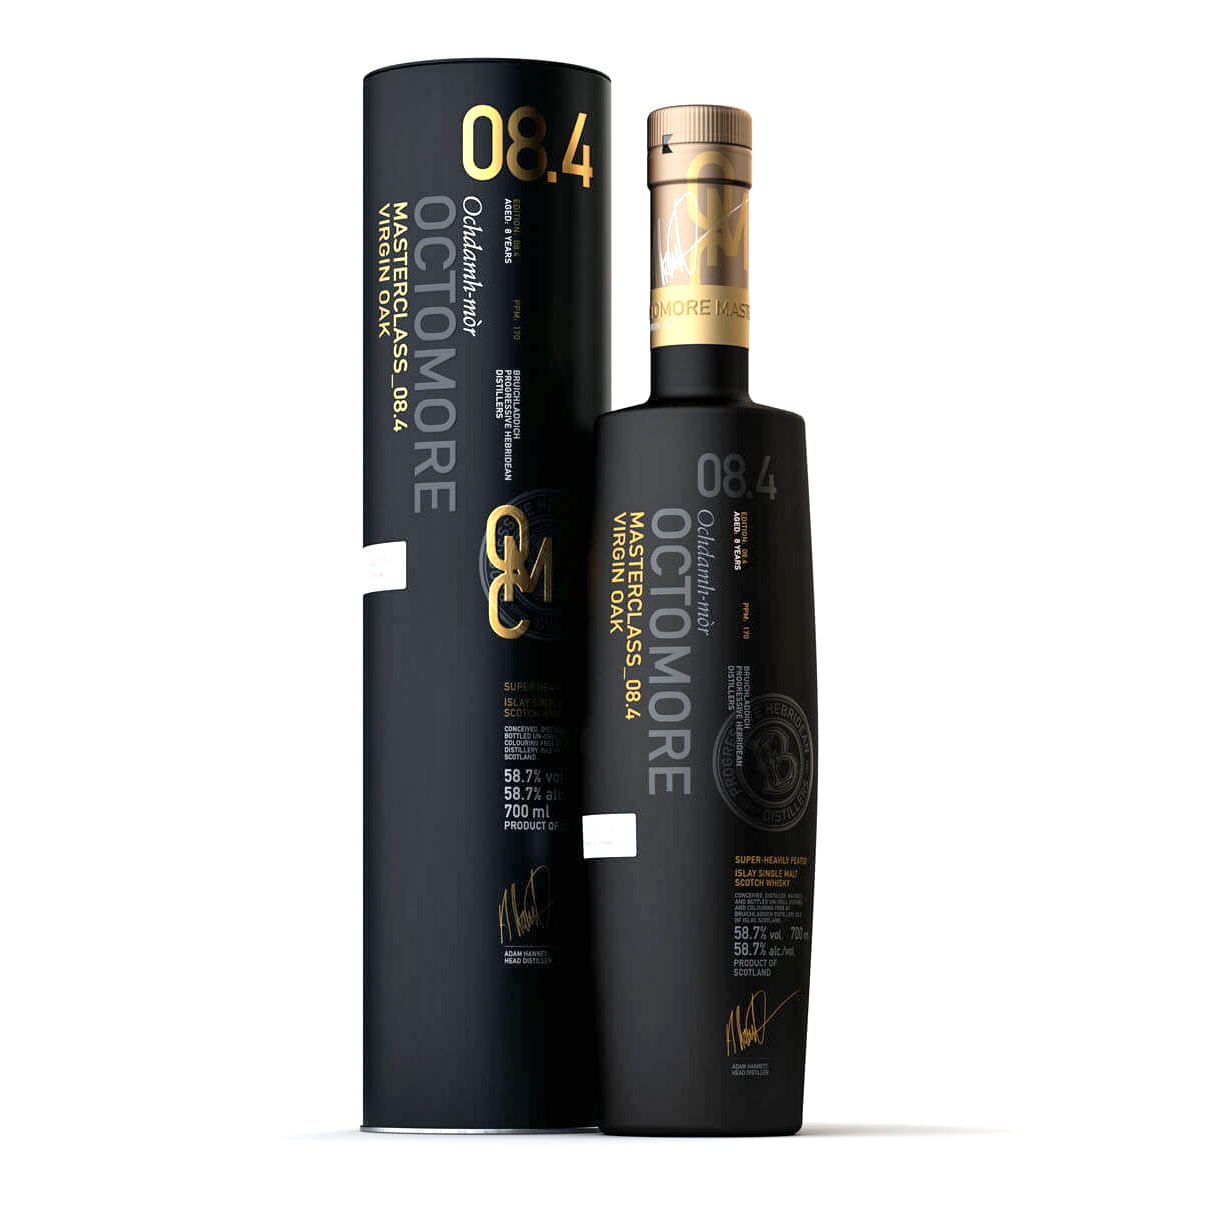 OCTOMORE 08.4/ 170 ppm VIRGIN OAK